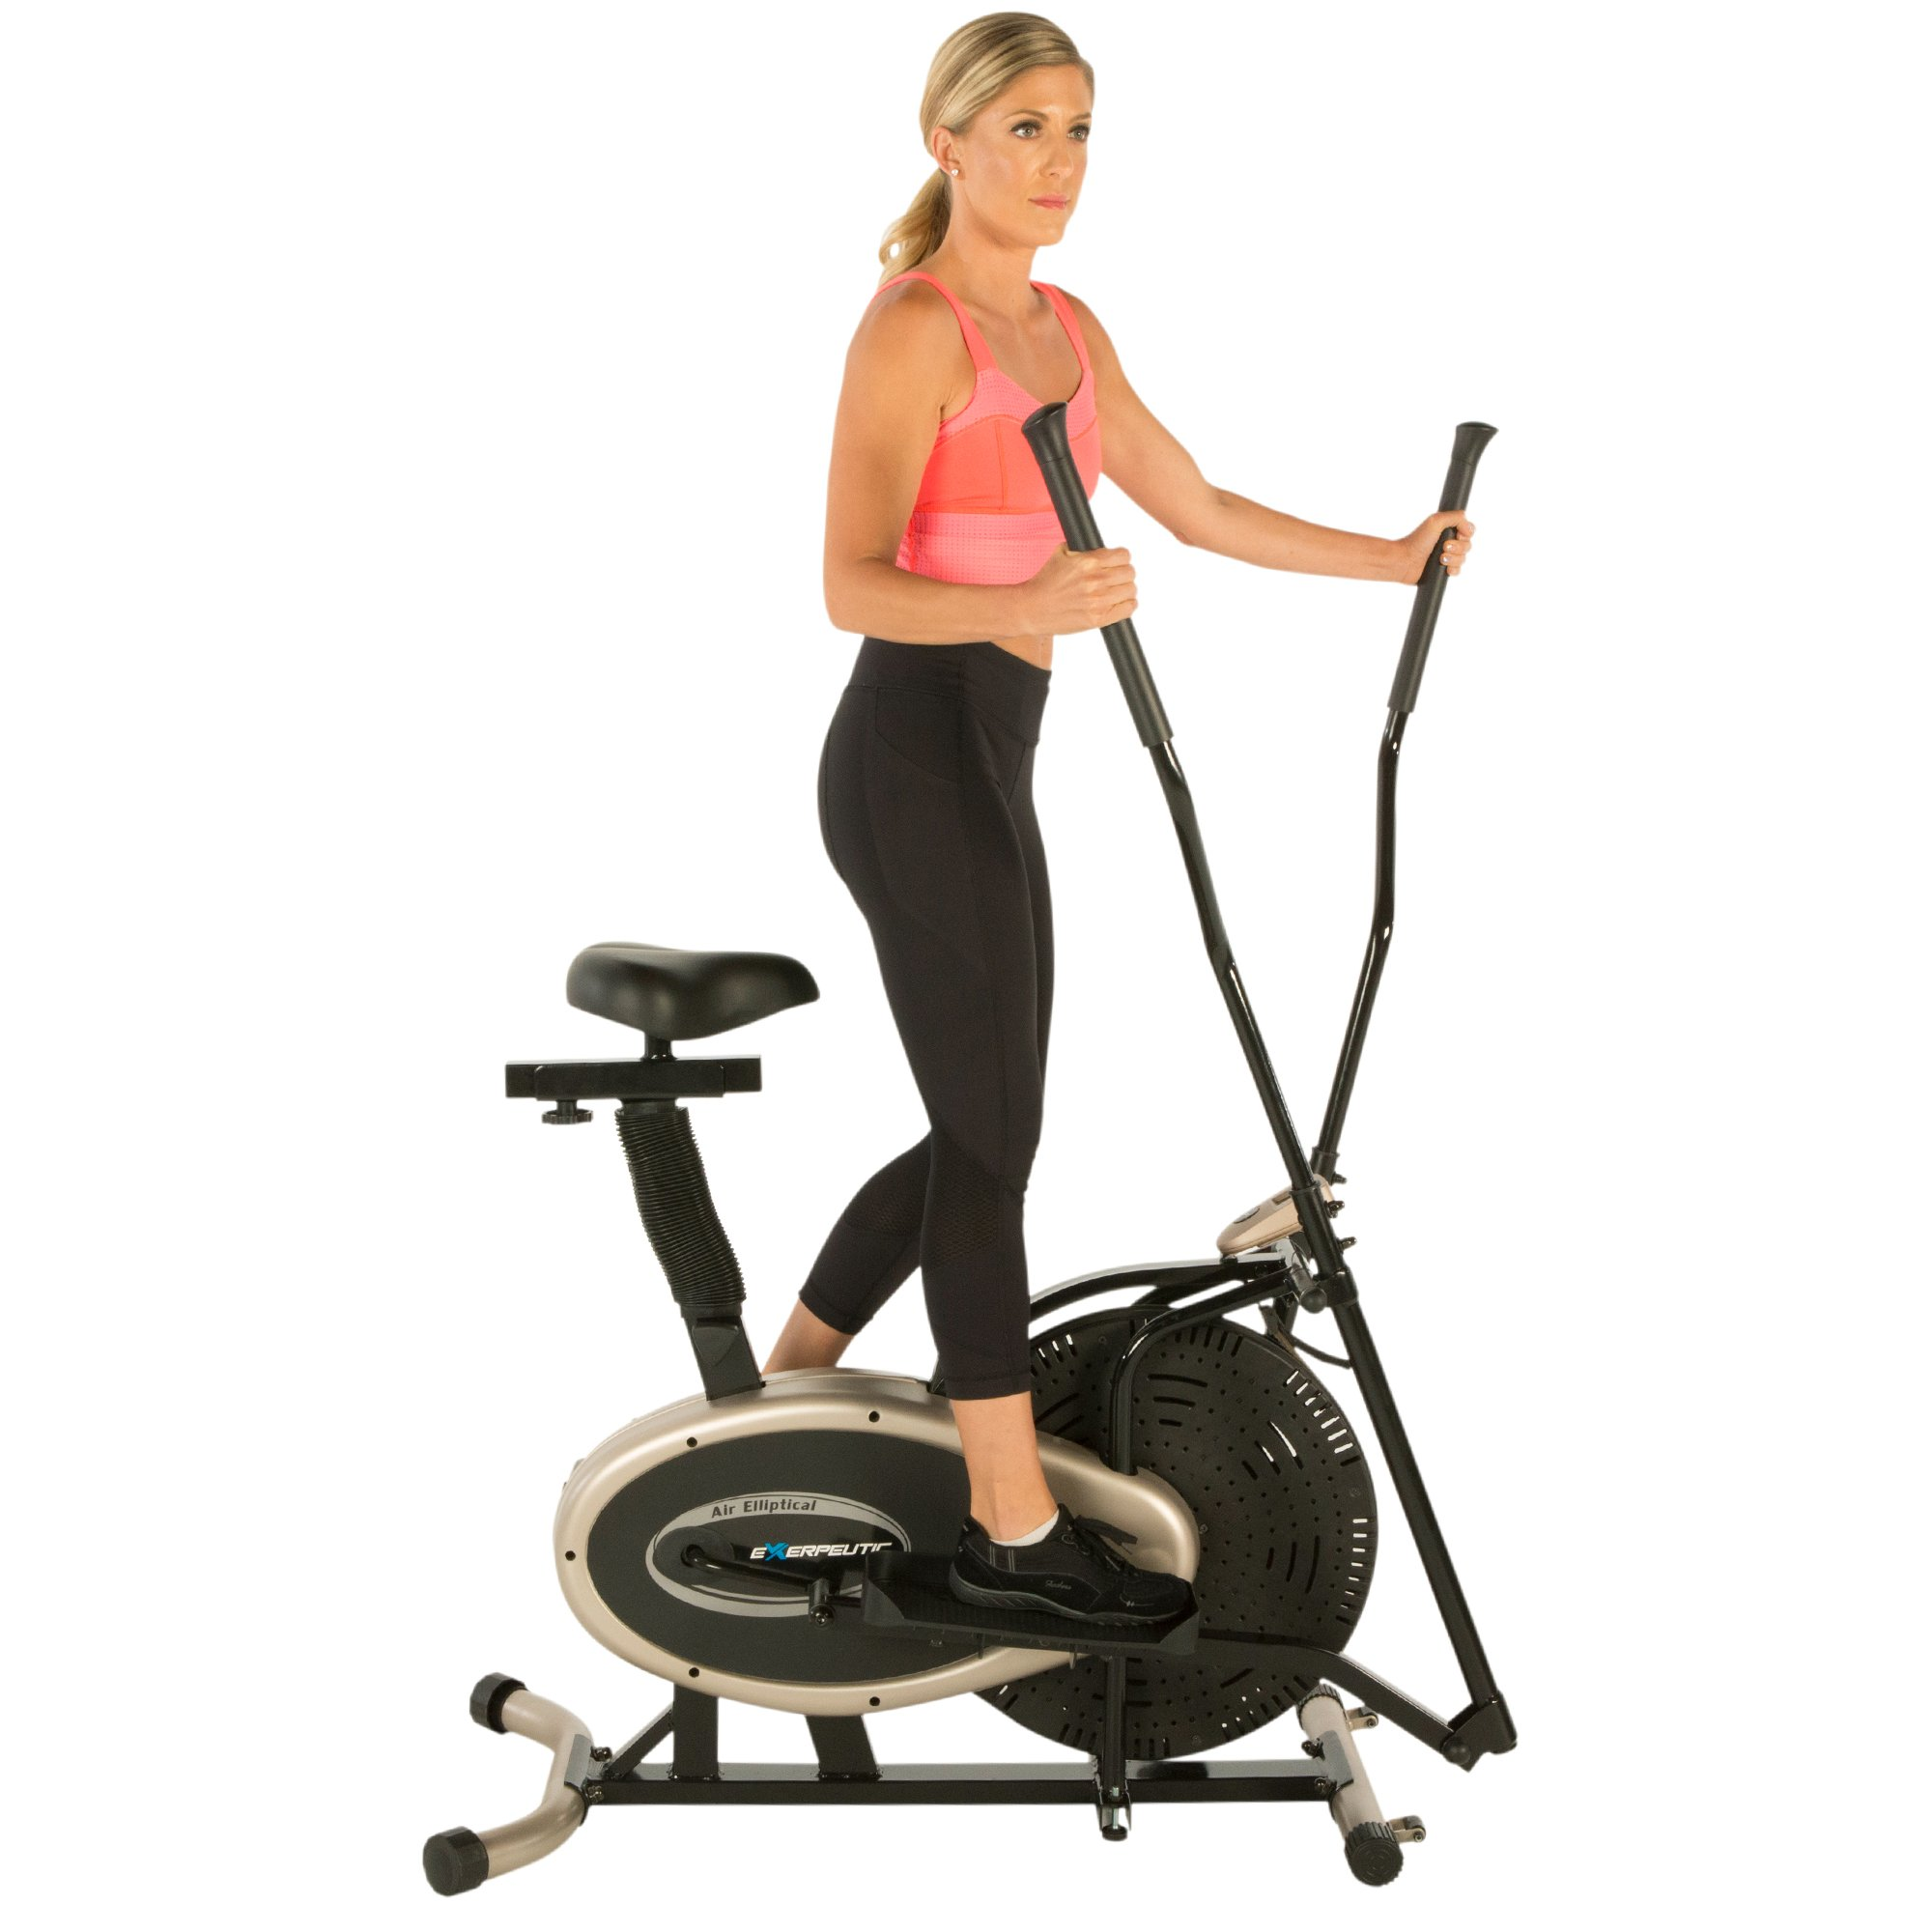 Exerpeutic Gold Elliptical and Exercise Bike Dual Trainer by Exerpeutic (Image #3)